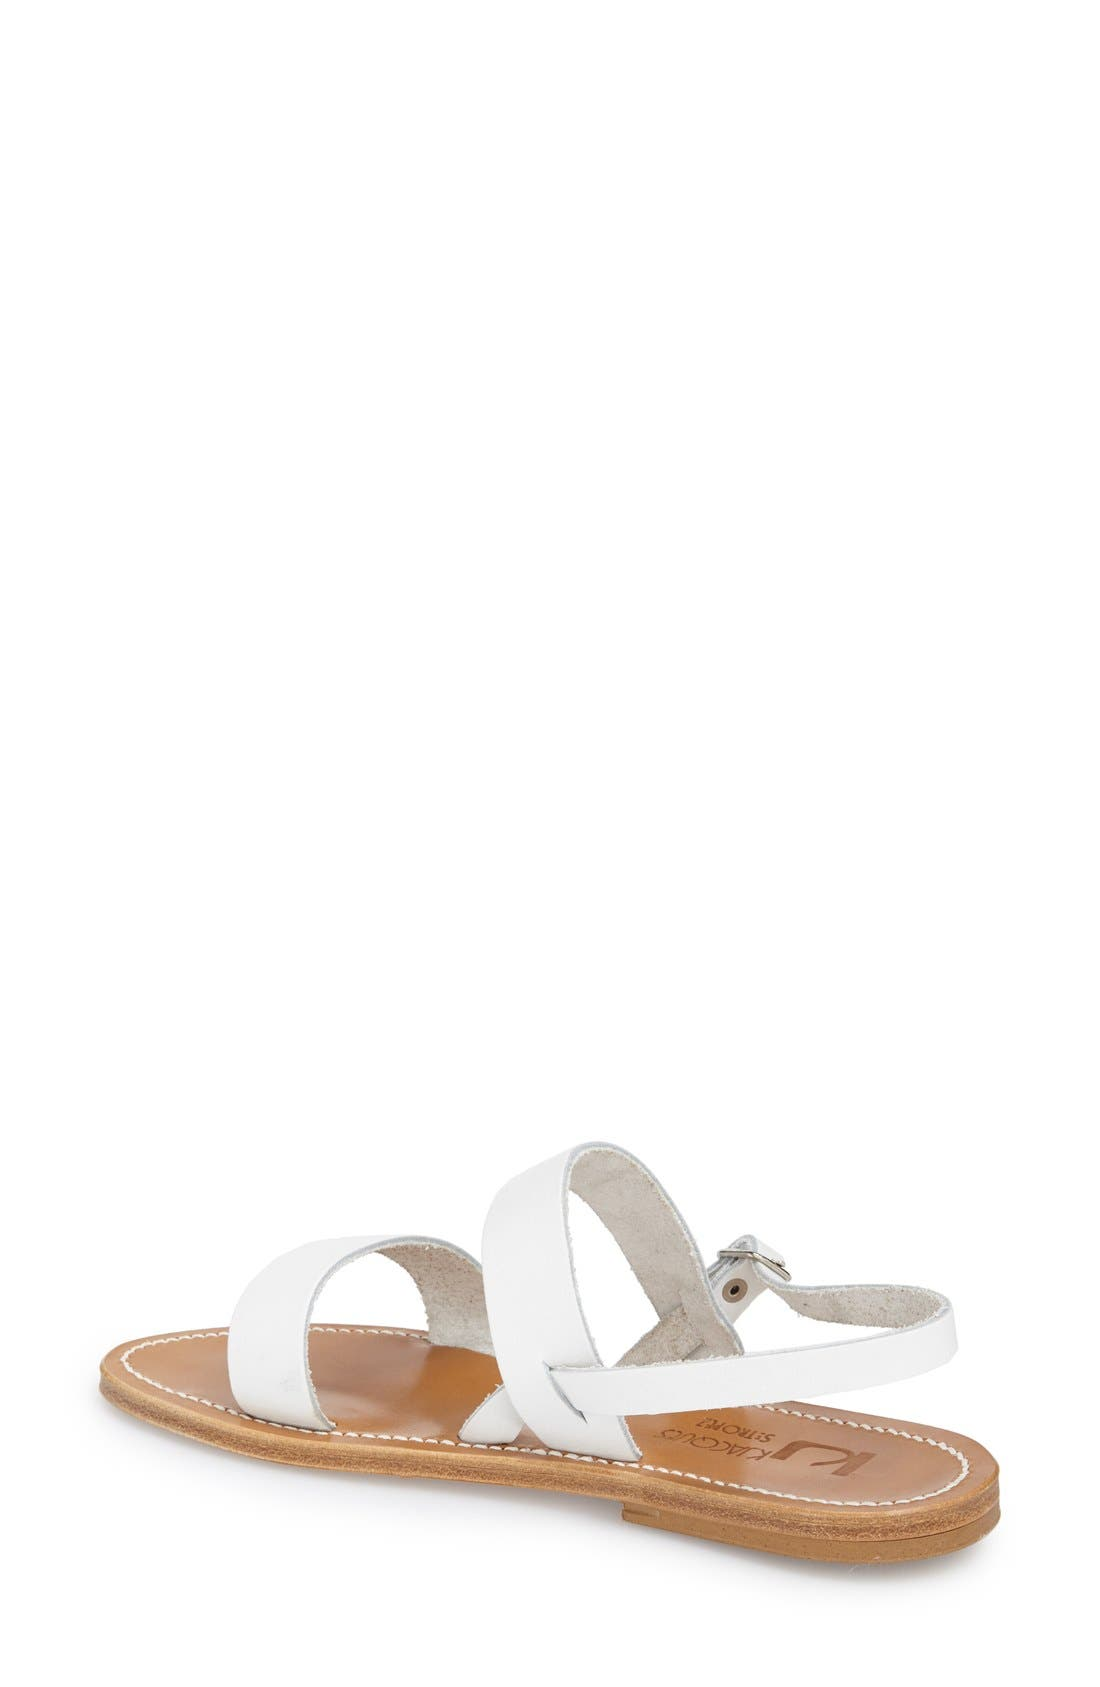 K Jacques St. Tropez Flat 'Barigoule' Vachetta Leather Sandal,                             Alternate thumbnail 2, color,                             101